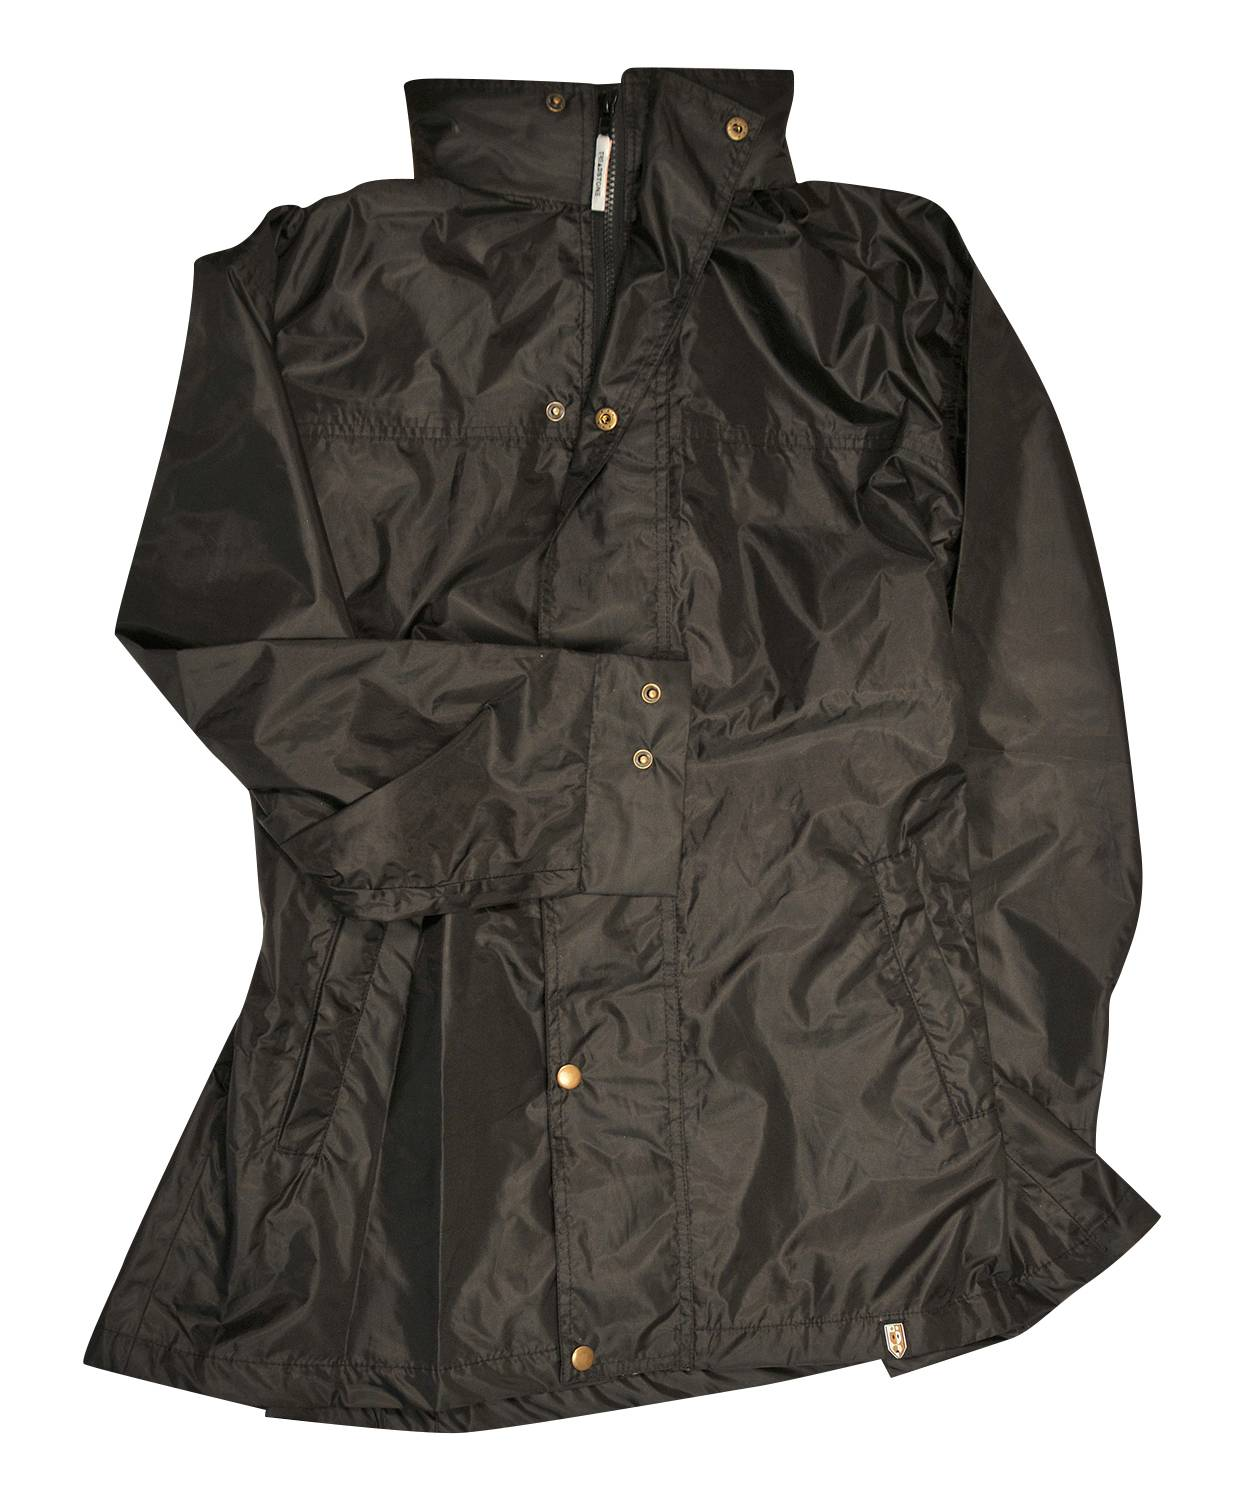 Treadstone Raincoat